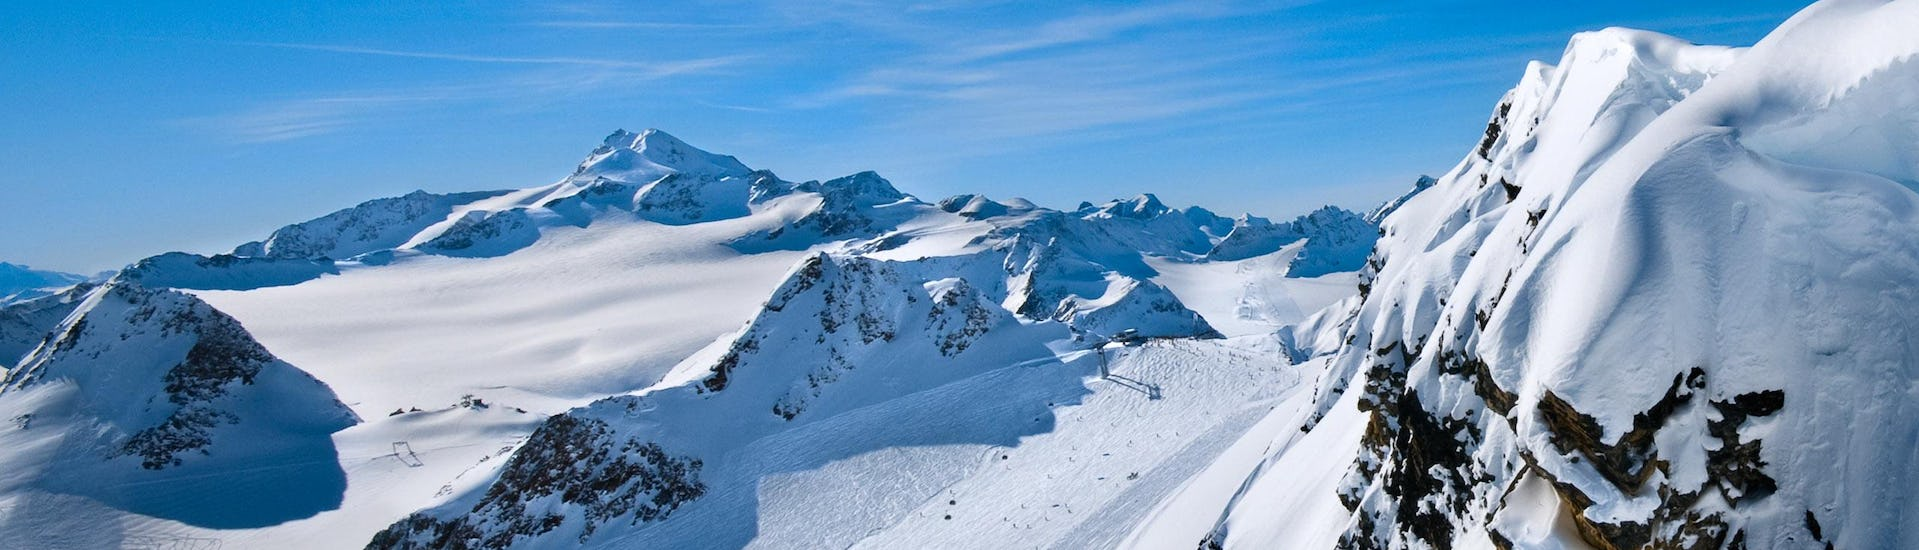 A view of a snowy mountain top in the ski resort of Les Carroz, where ski schools gather to start their ski lessons.